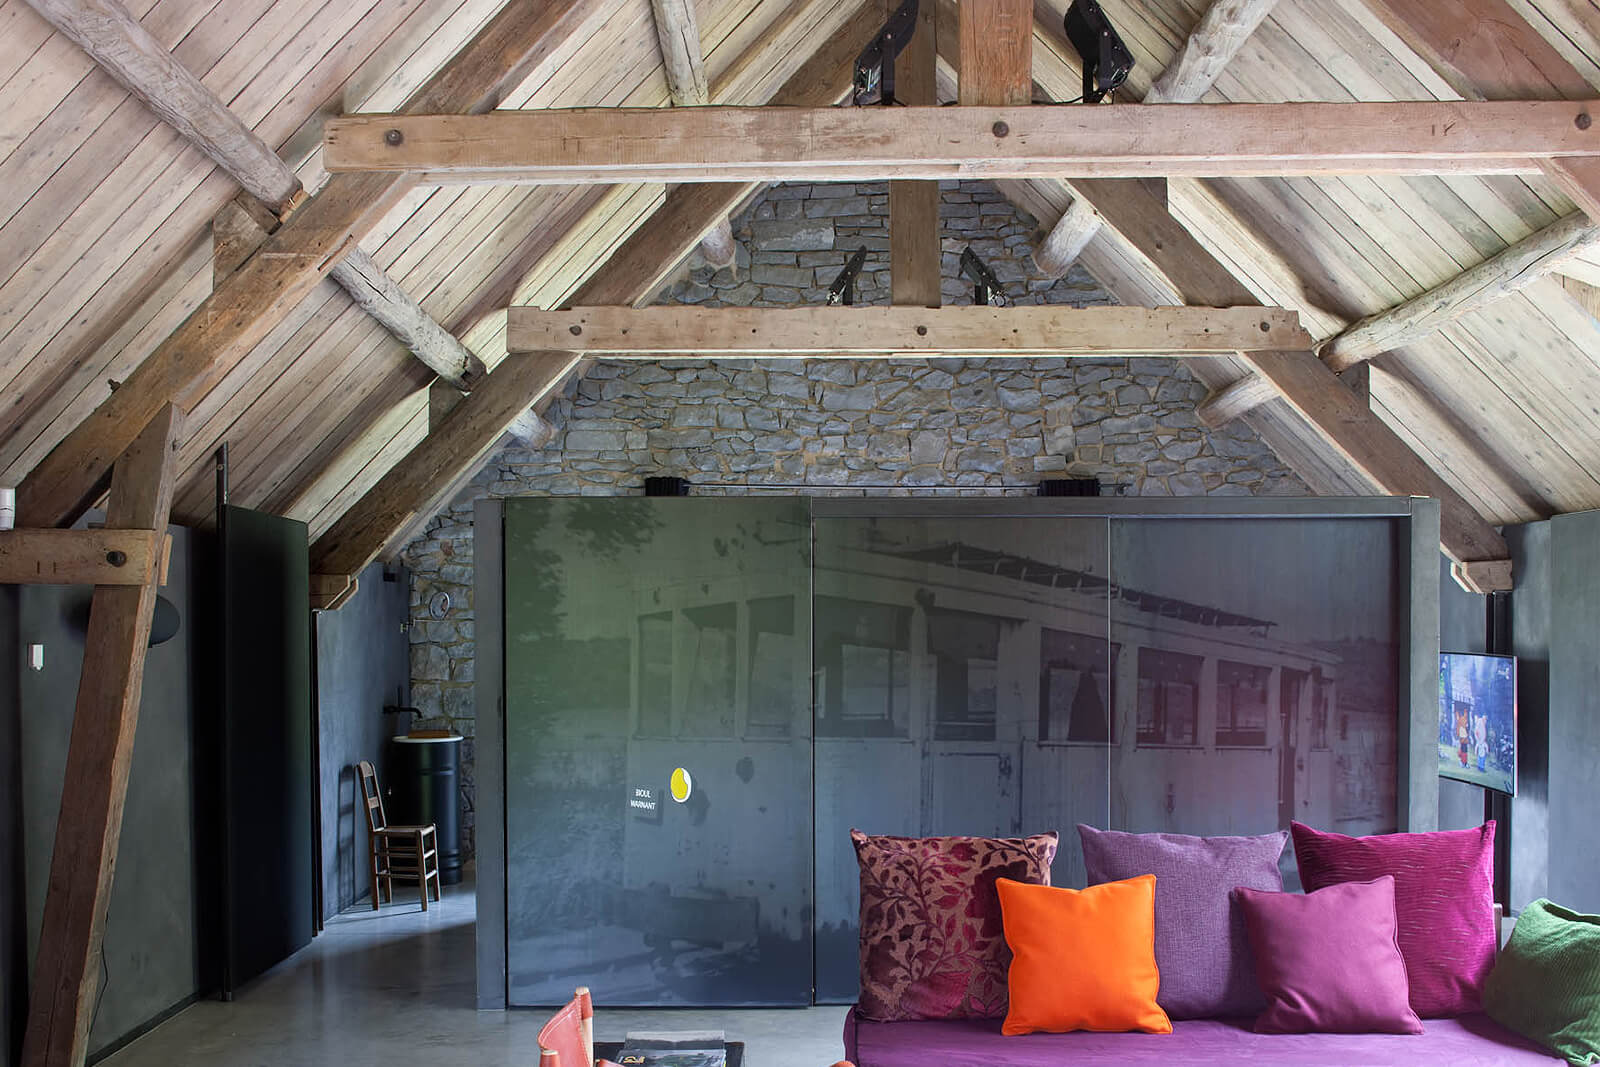 The Train Station, Bioul, Belgium | vacation home rentals